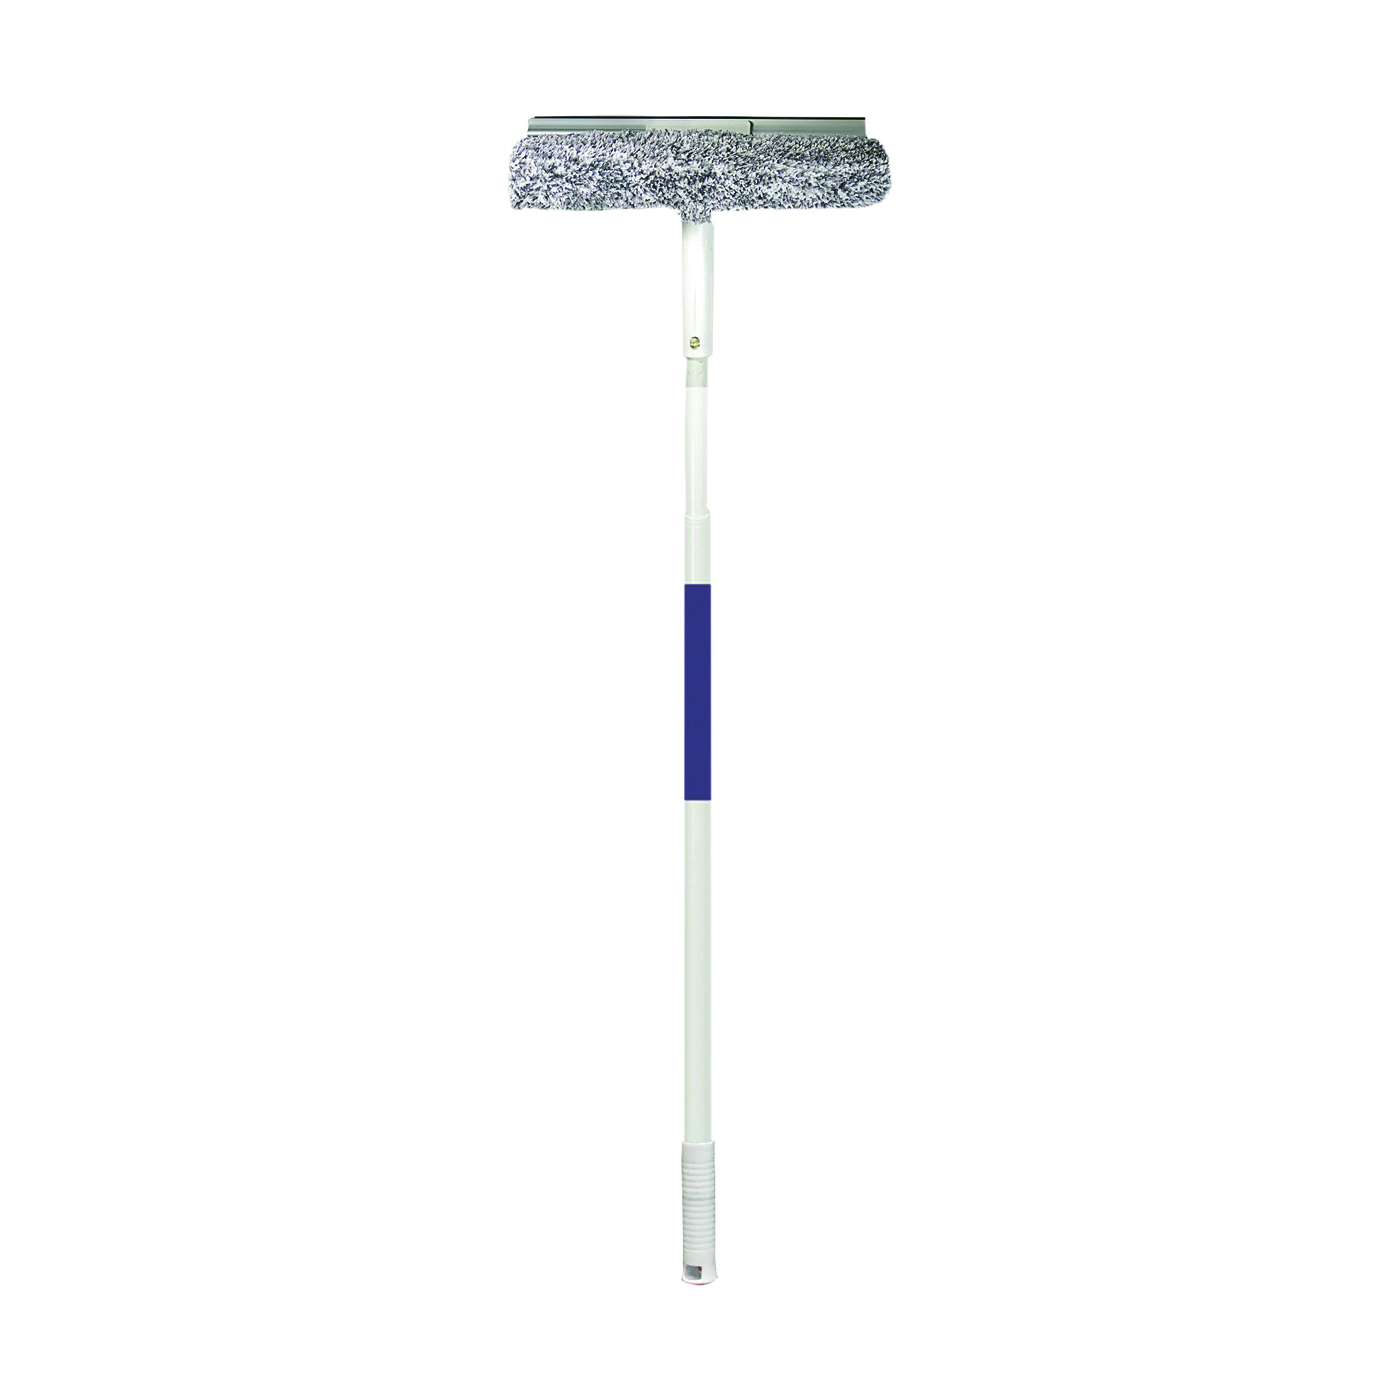 Picture of Unger 975620 Squeegee and Scrubber Kit, 39-3/4 in OAL, Gray/White